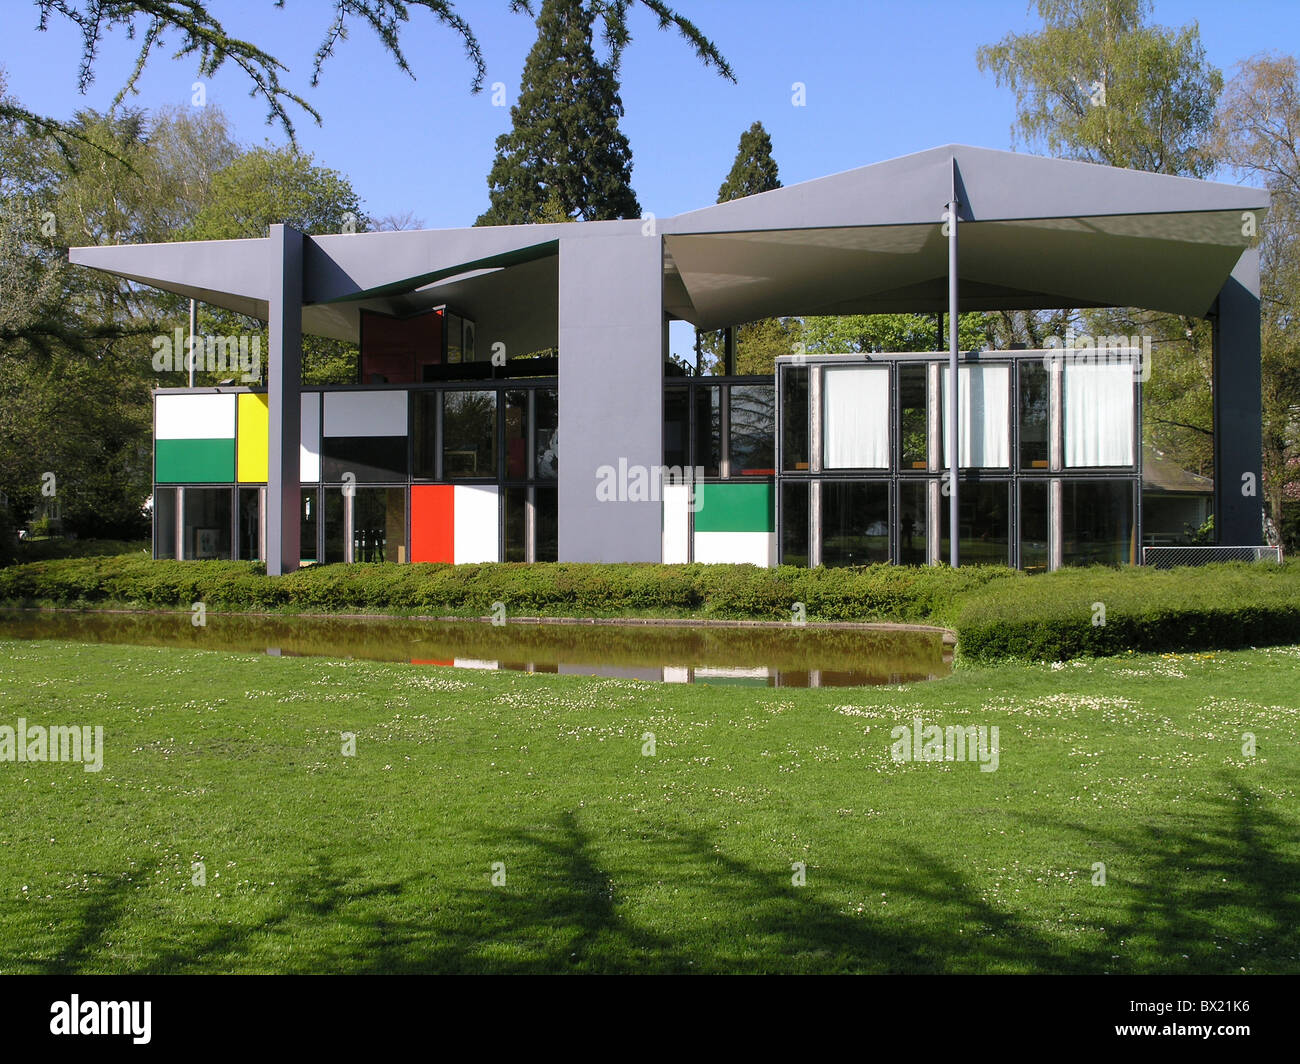 Architecture city home le corbusier house modern zurich outside switzerland europe town